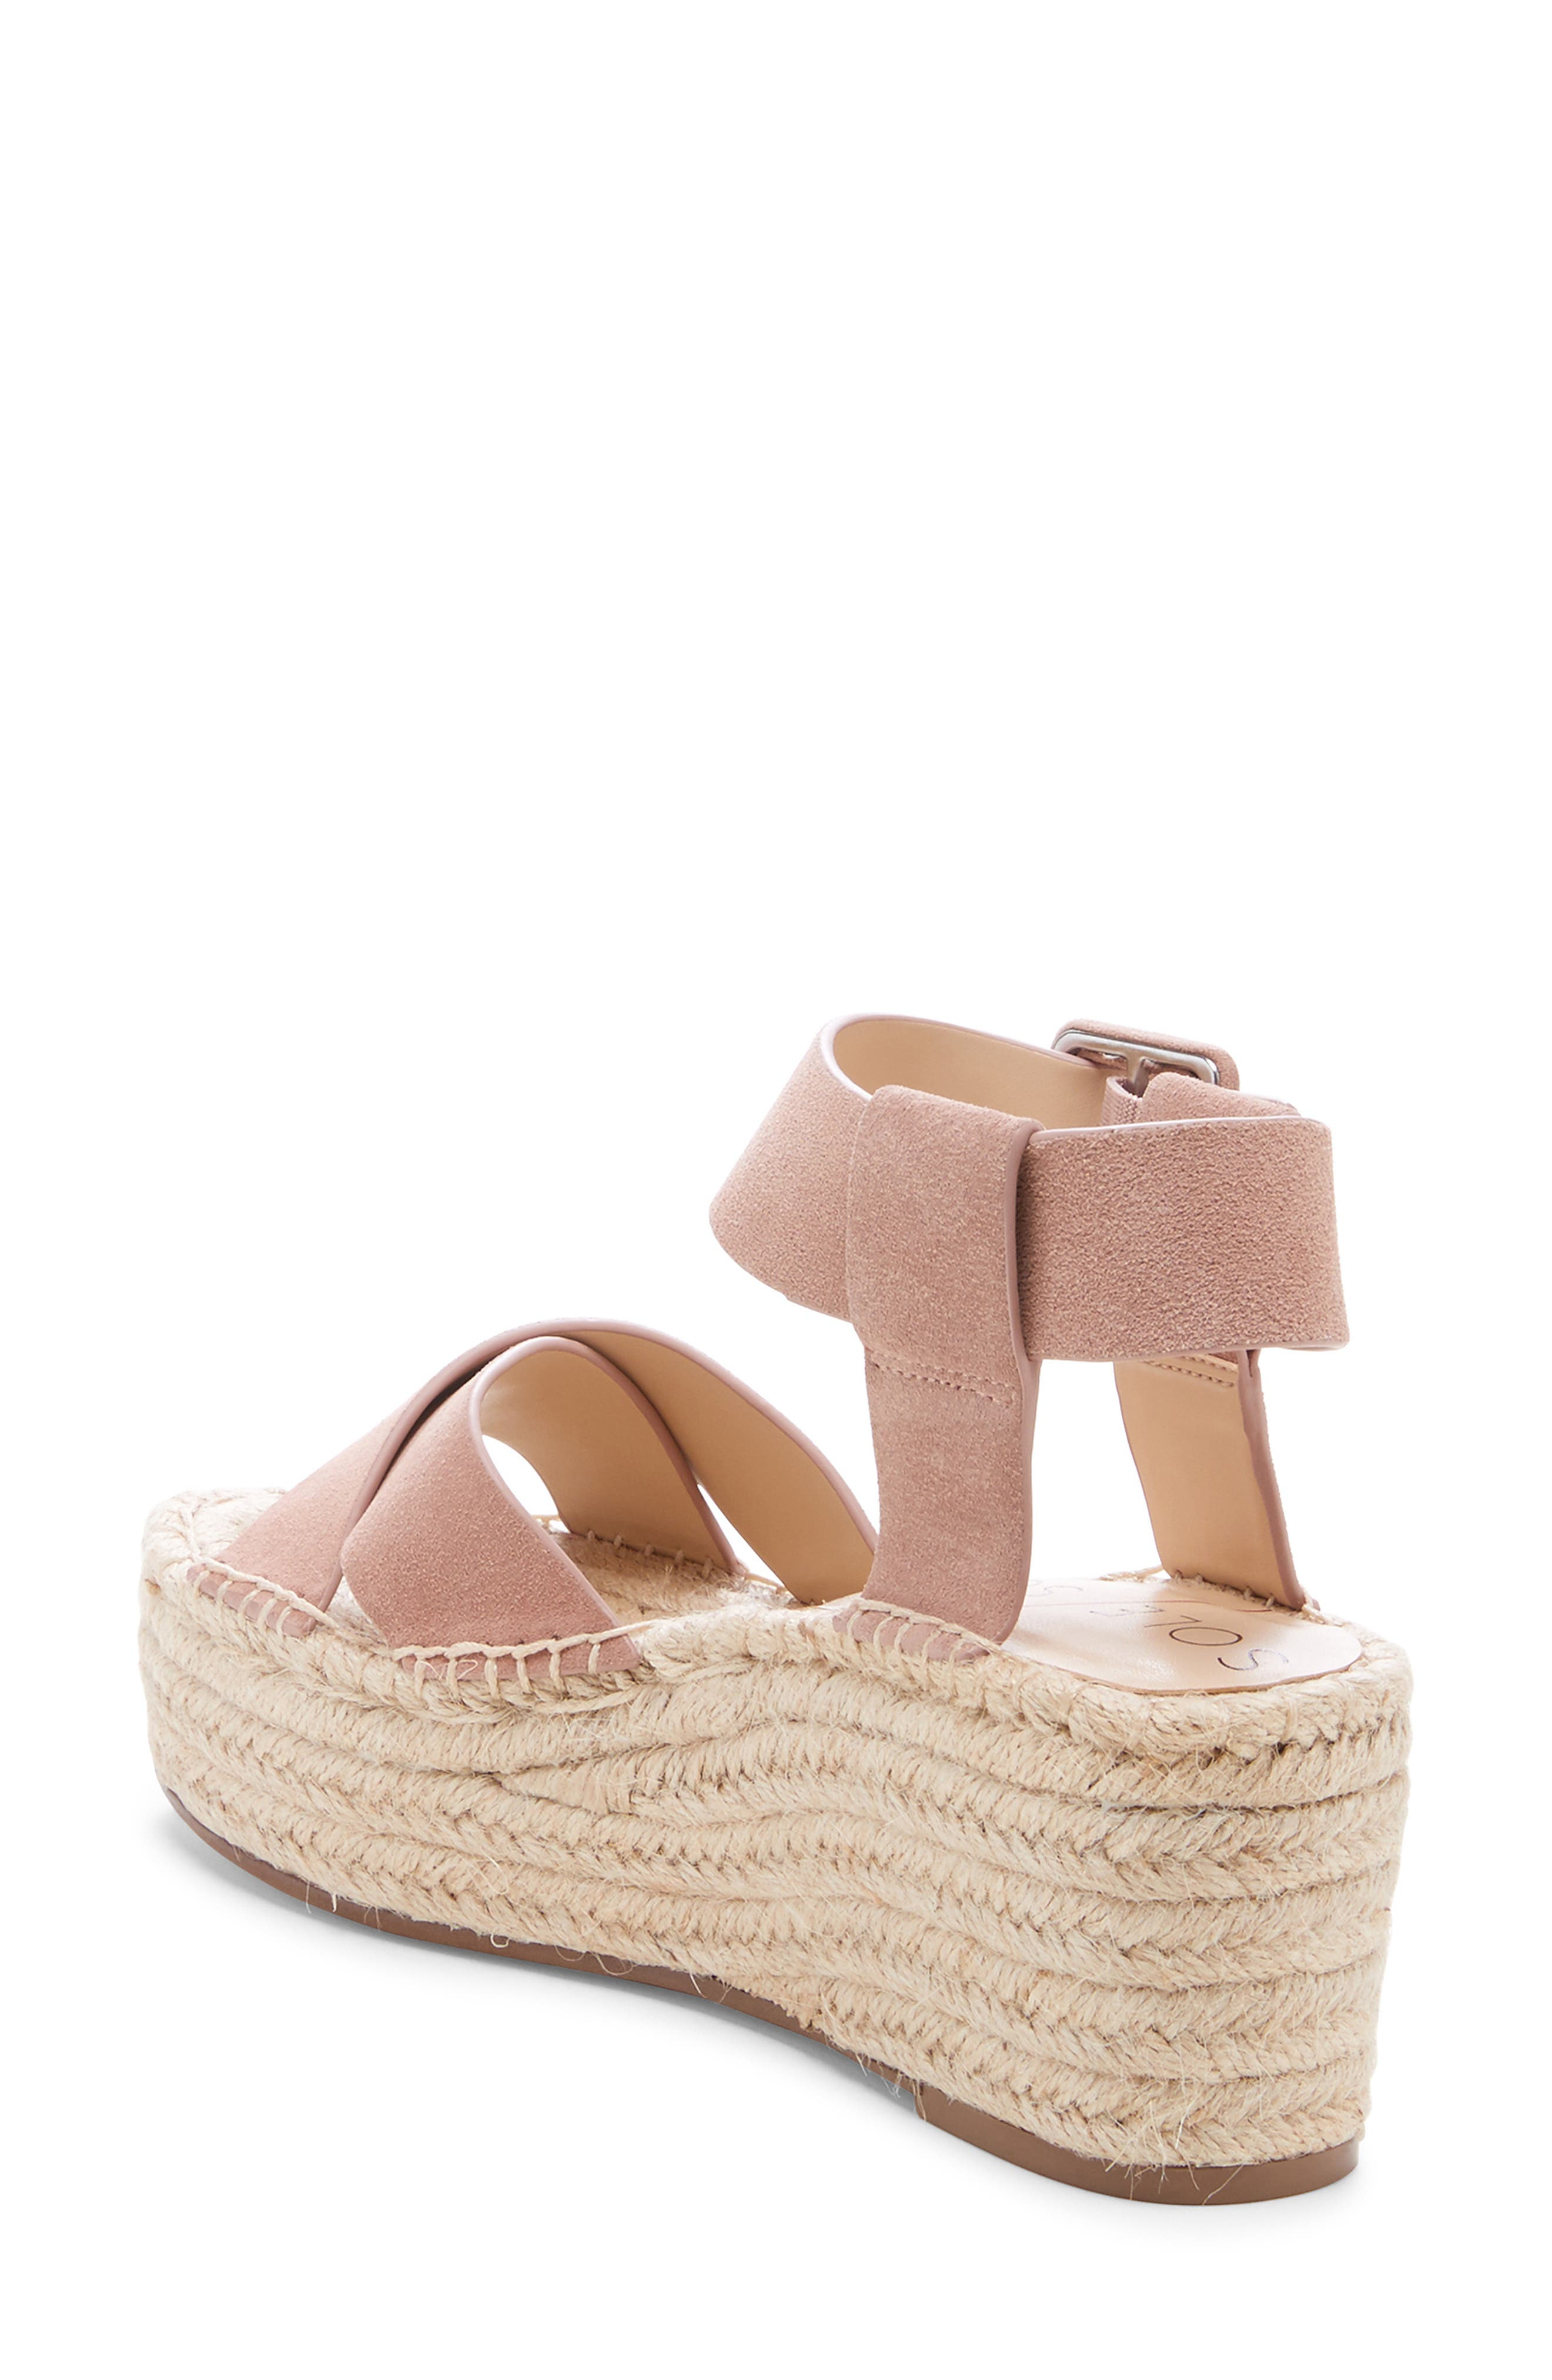 SOLE SOCIETY, Audrina Platform Espadrille Sandal, Alternate thumbnail 2, color, DUSTY ROSE SUEDE